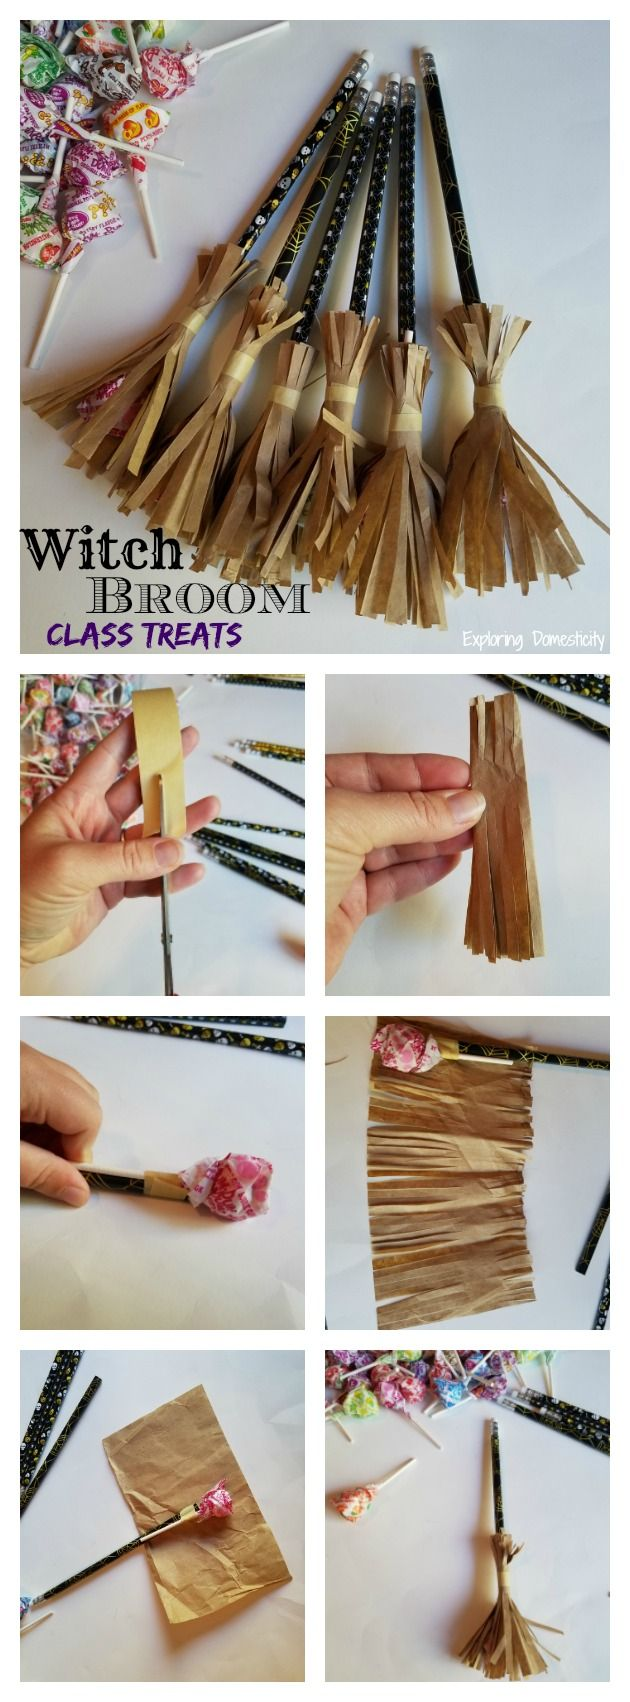 Witch Broom Halloween Class Treats                                                                                                                                                                                 More